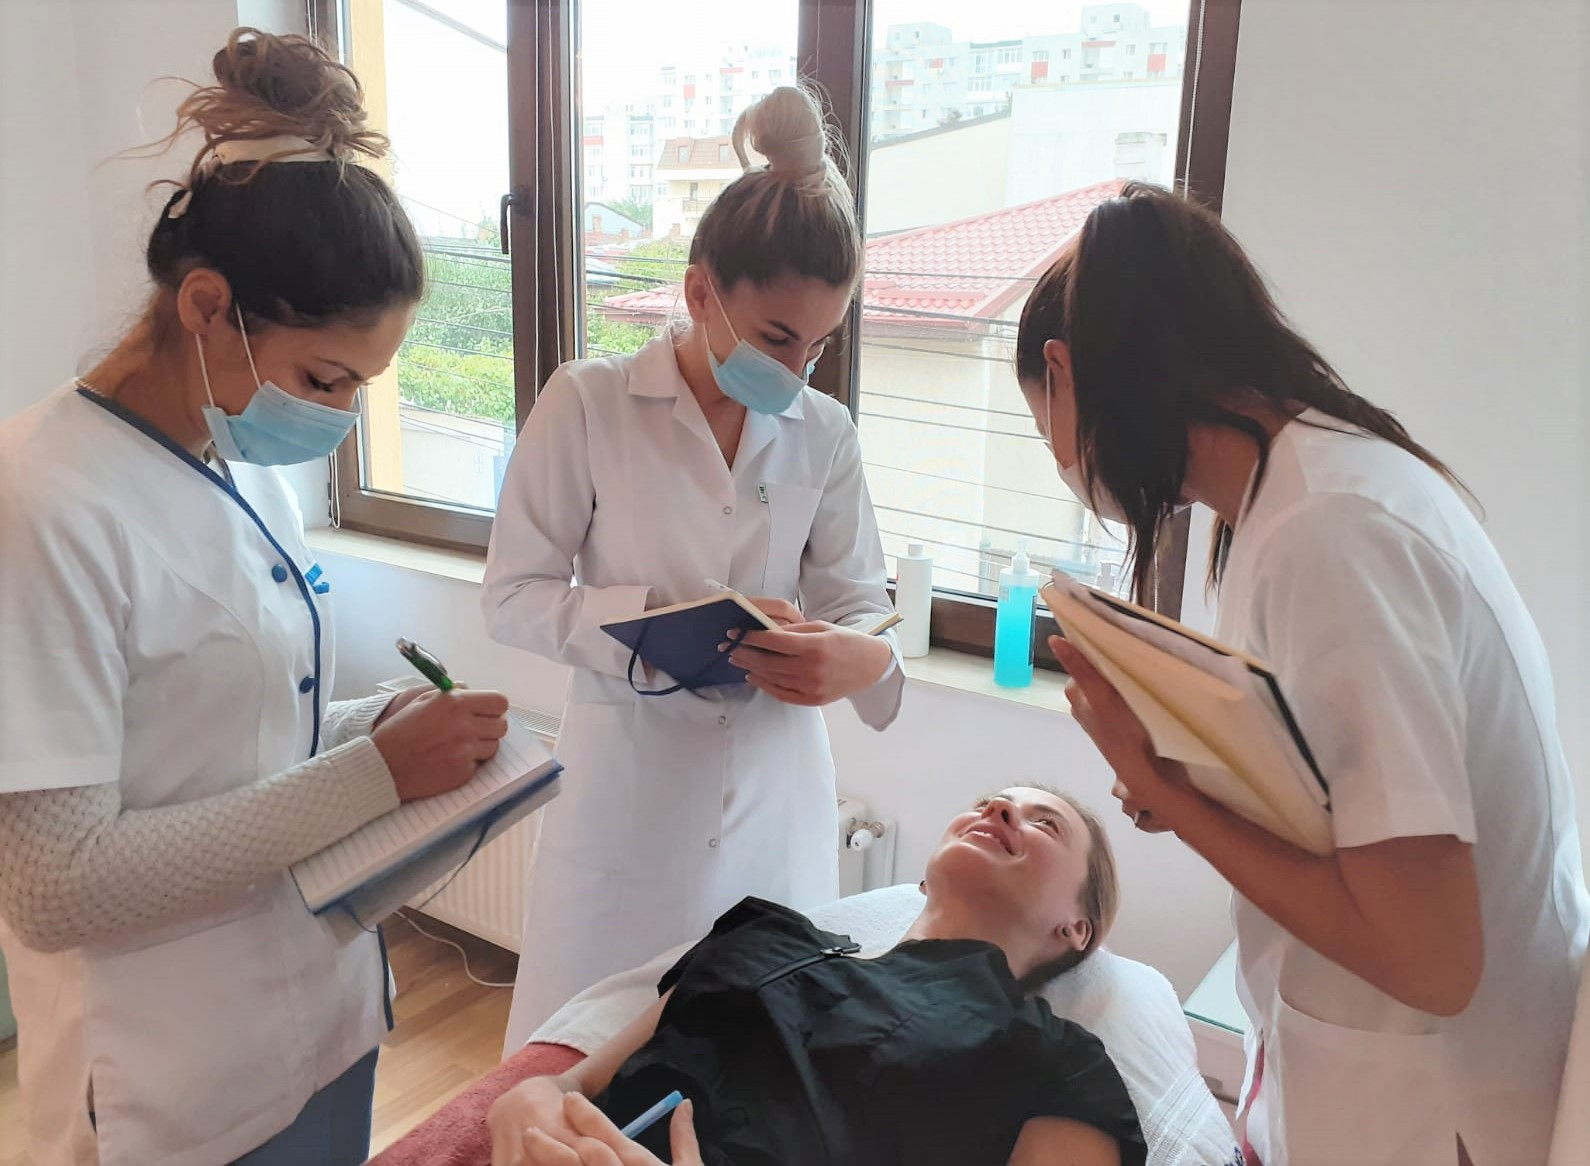 Curs cosmetica pandemie